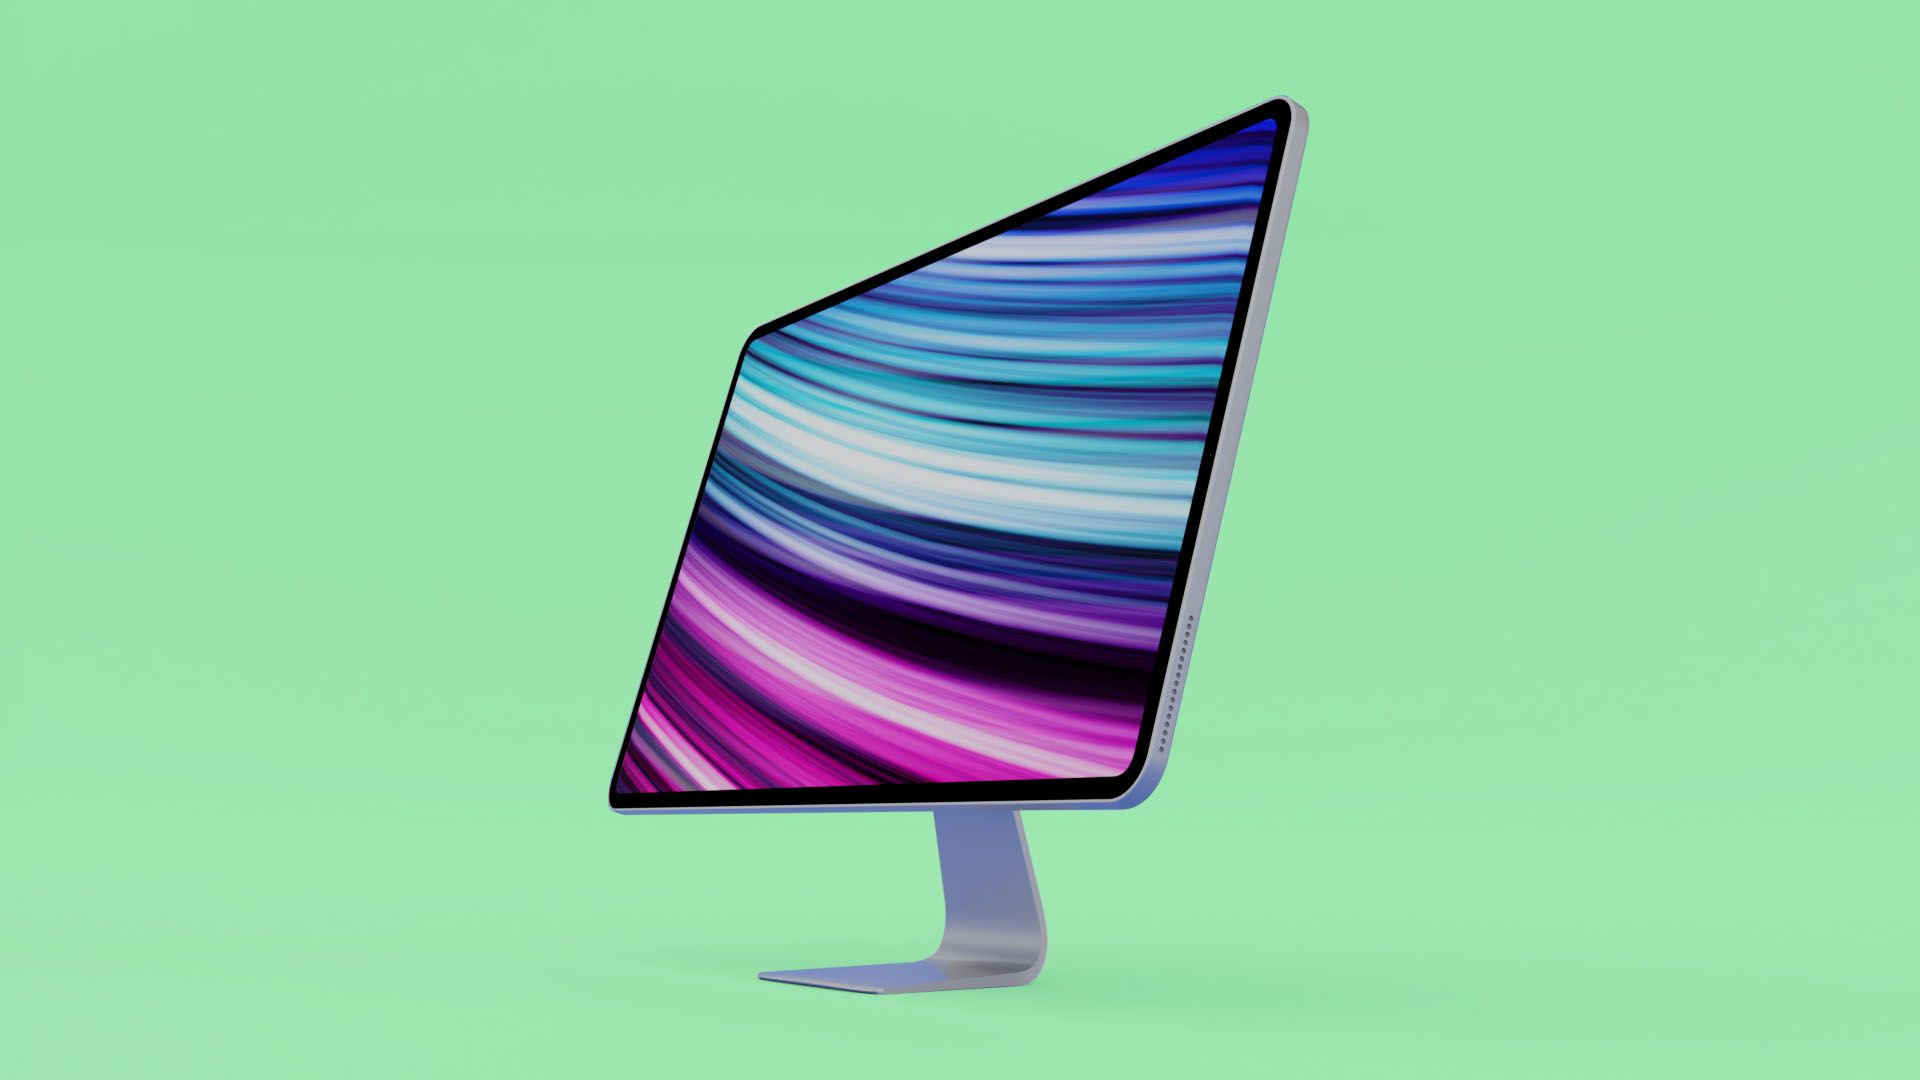 Apple develops a redesigned iMac with thinner bezels and Apple Silicon chipsets